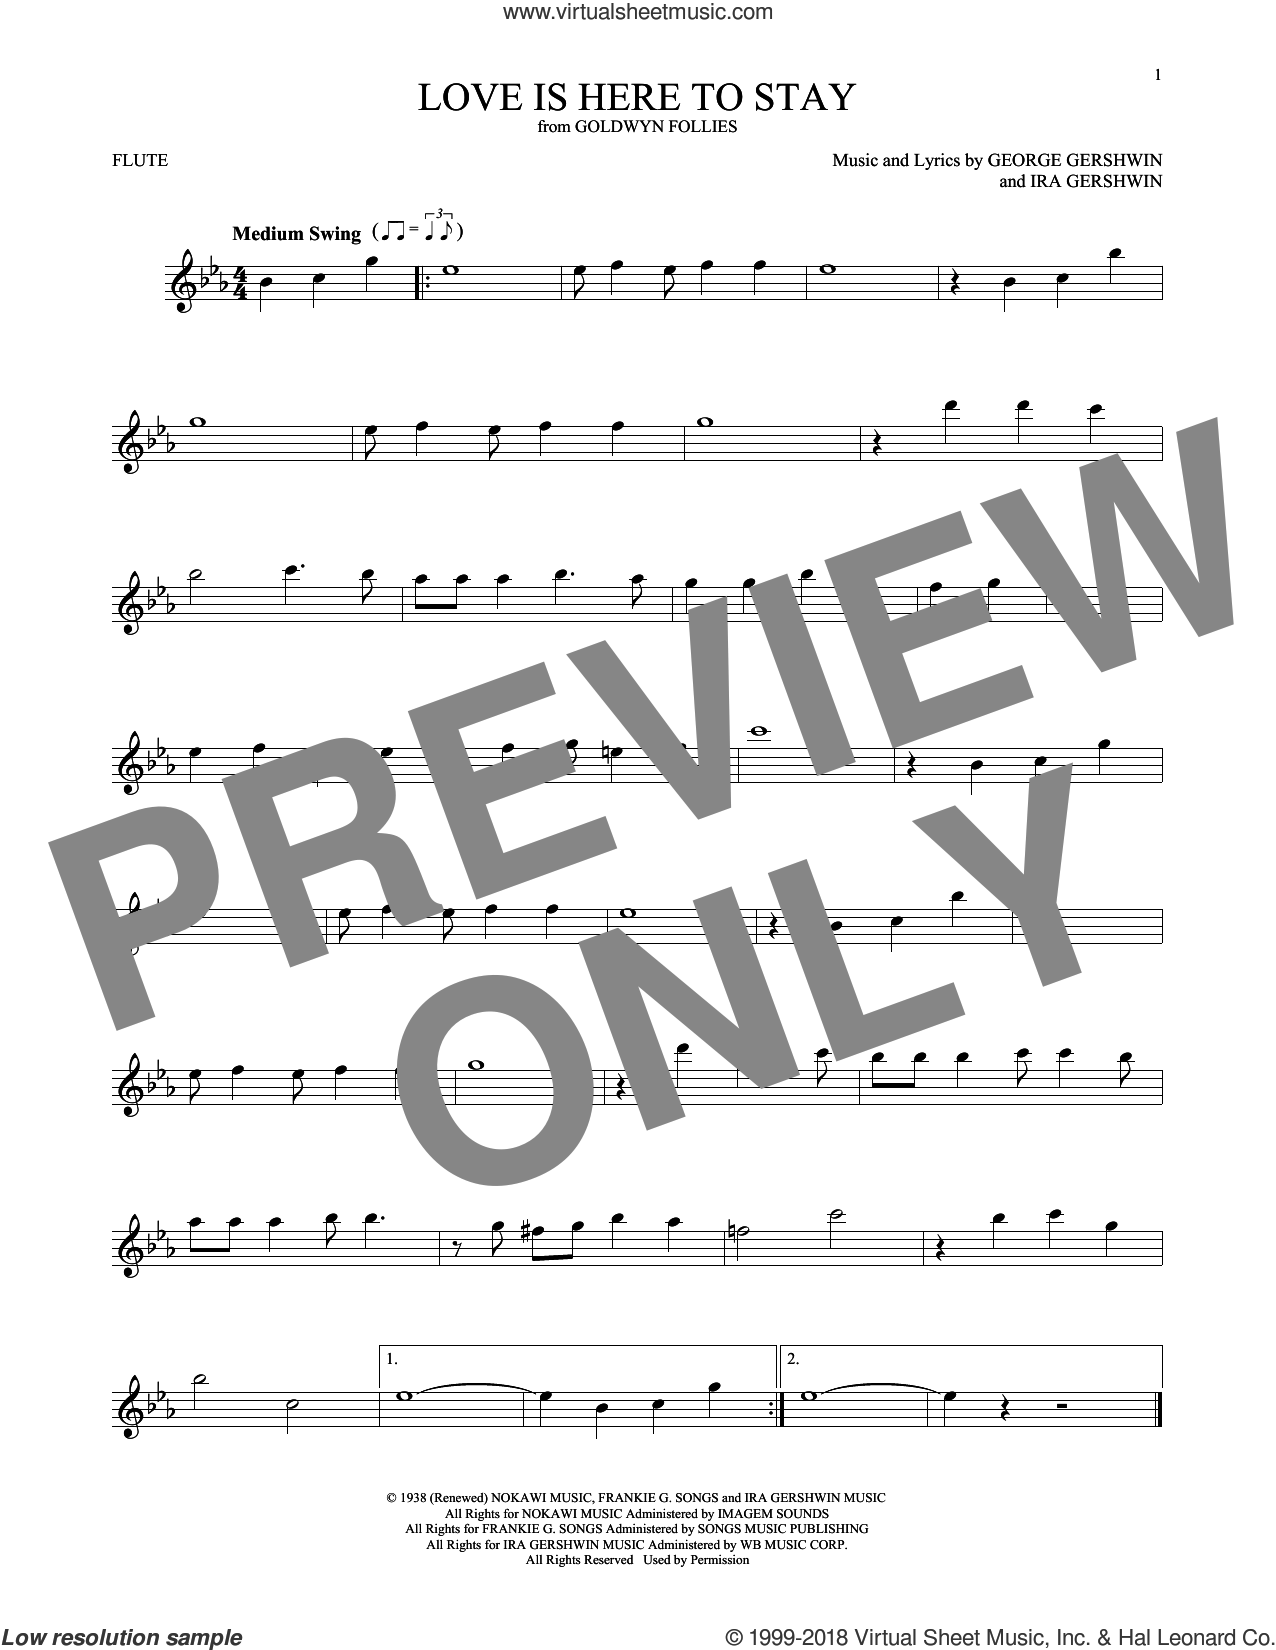 Love Is Here To Stay sheet music for flute solo by George Gershwin and Ira Gershwin, intermediate skill level